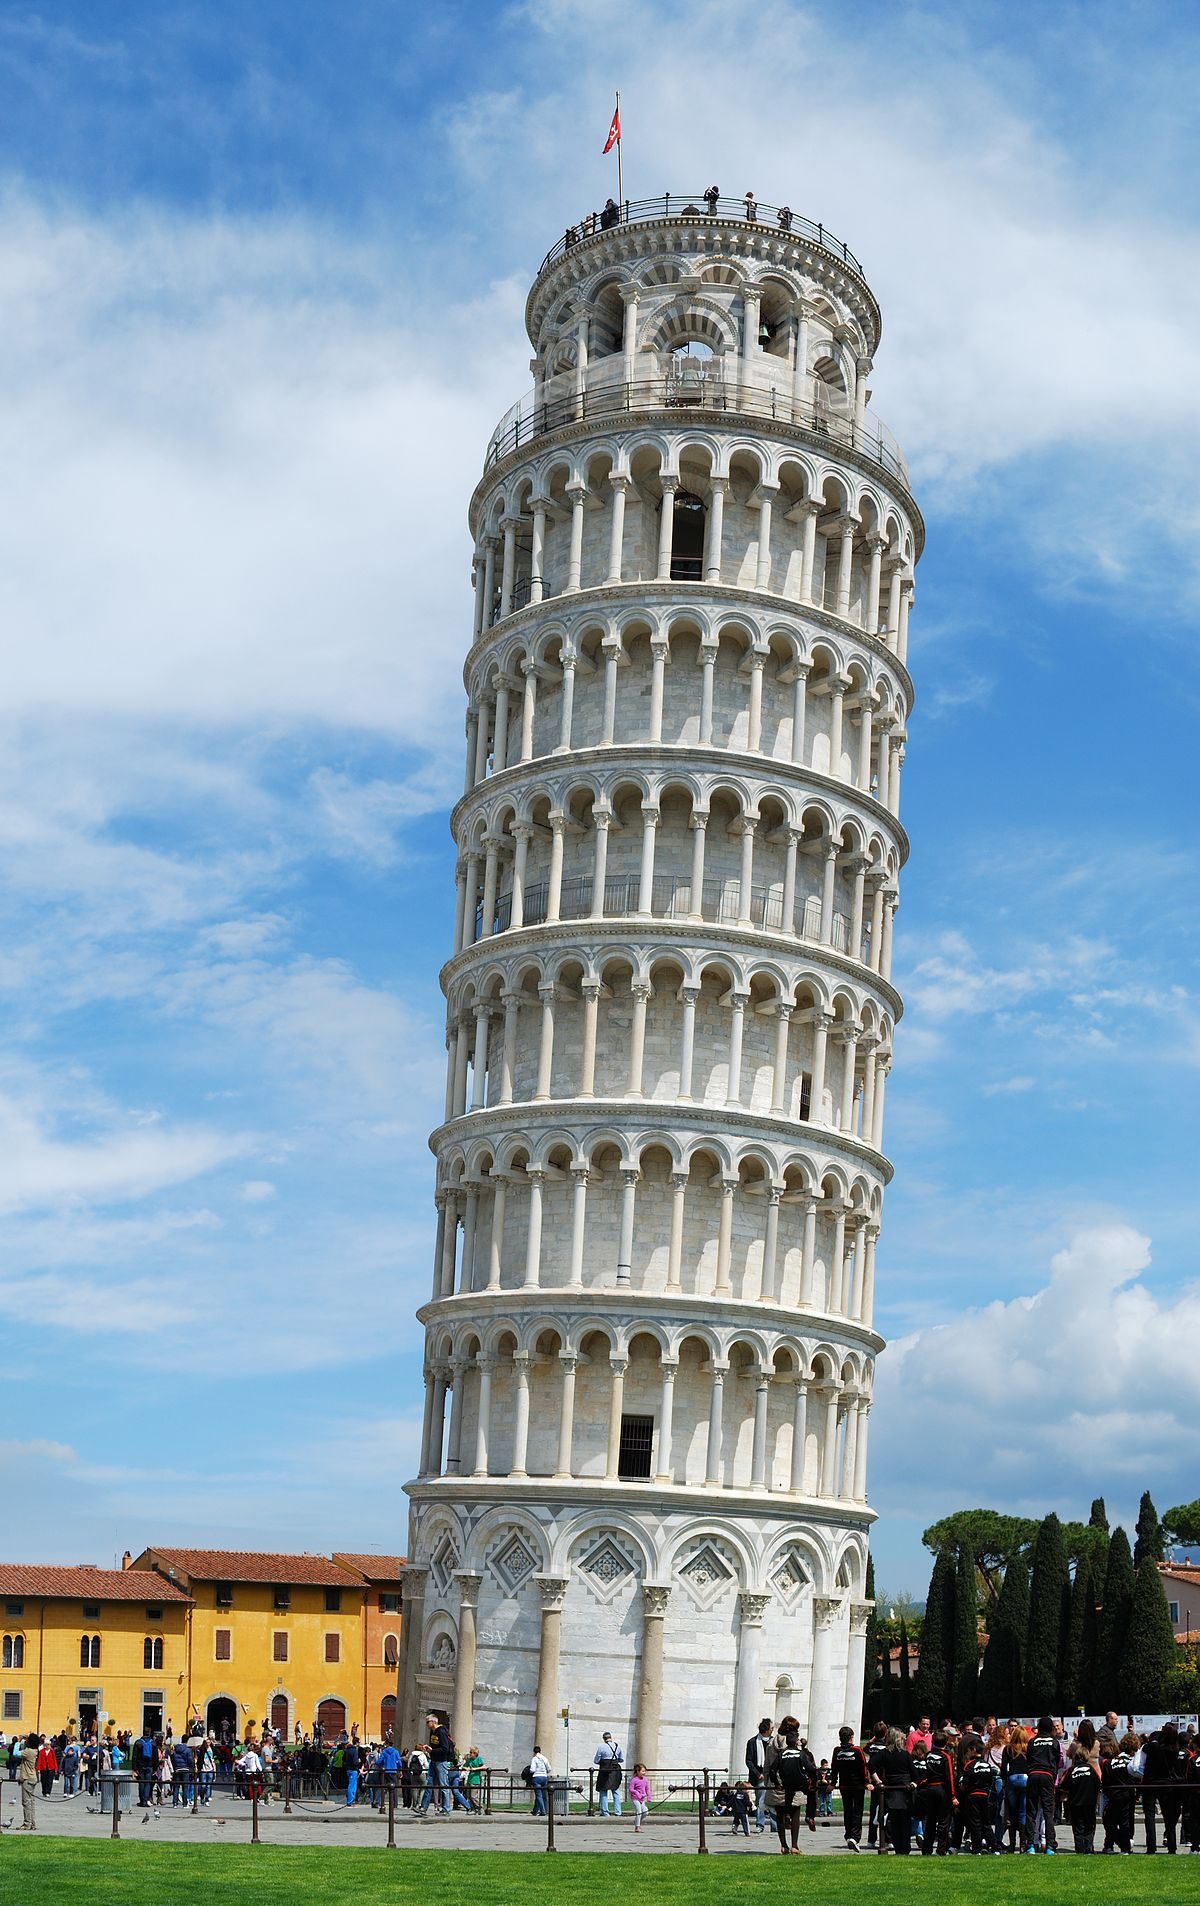 Leaning tower of pisa simple english wikipedia the free encyclopedia - Lego architecture tour de pise ...